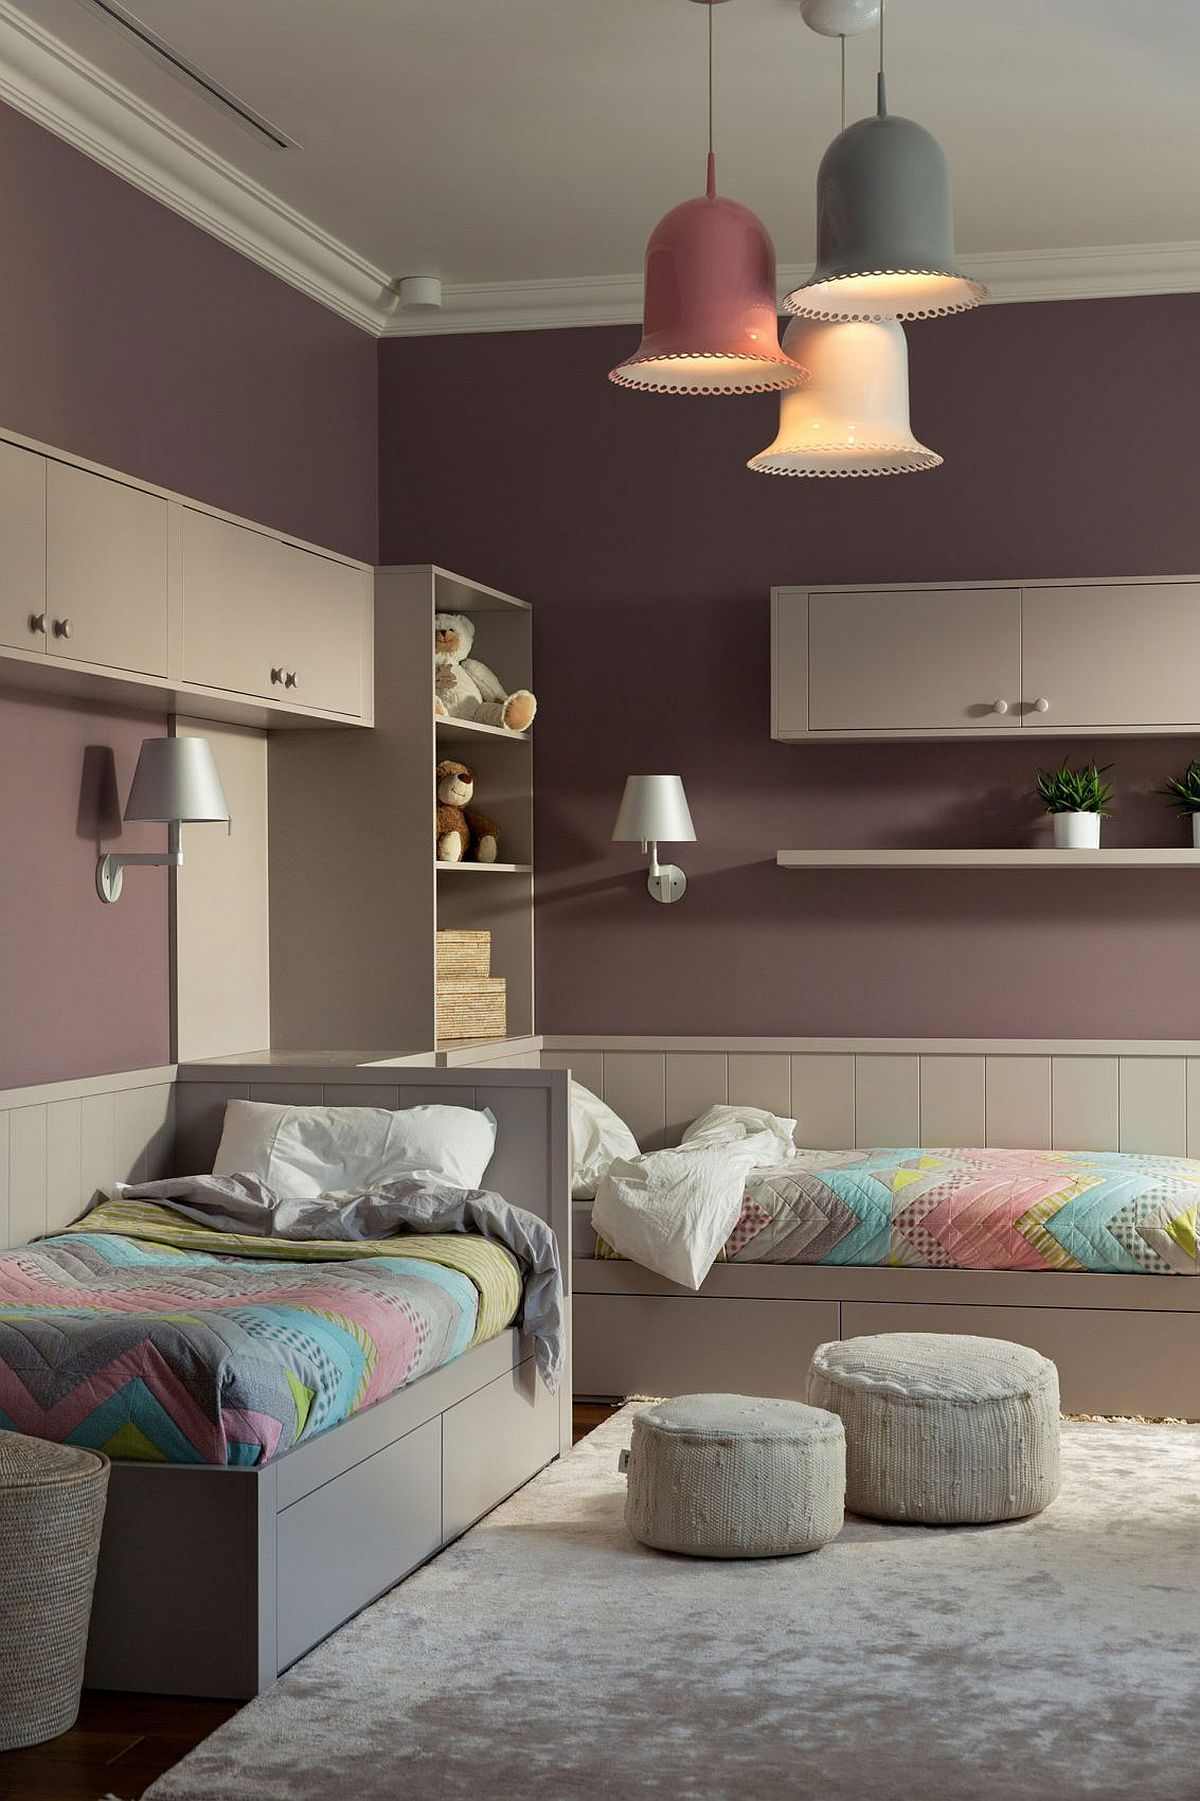 Twin Boys Bedroom Ideas: Chic And Feminine: Luxurious Two Level Apartment In Kiev